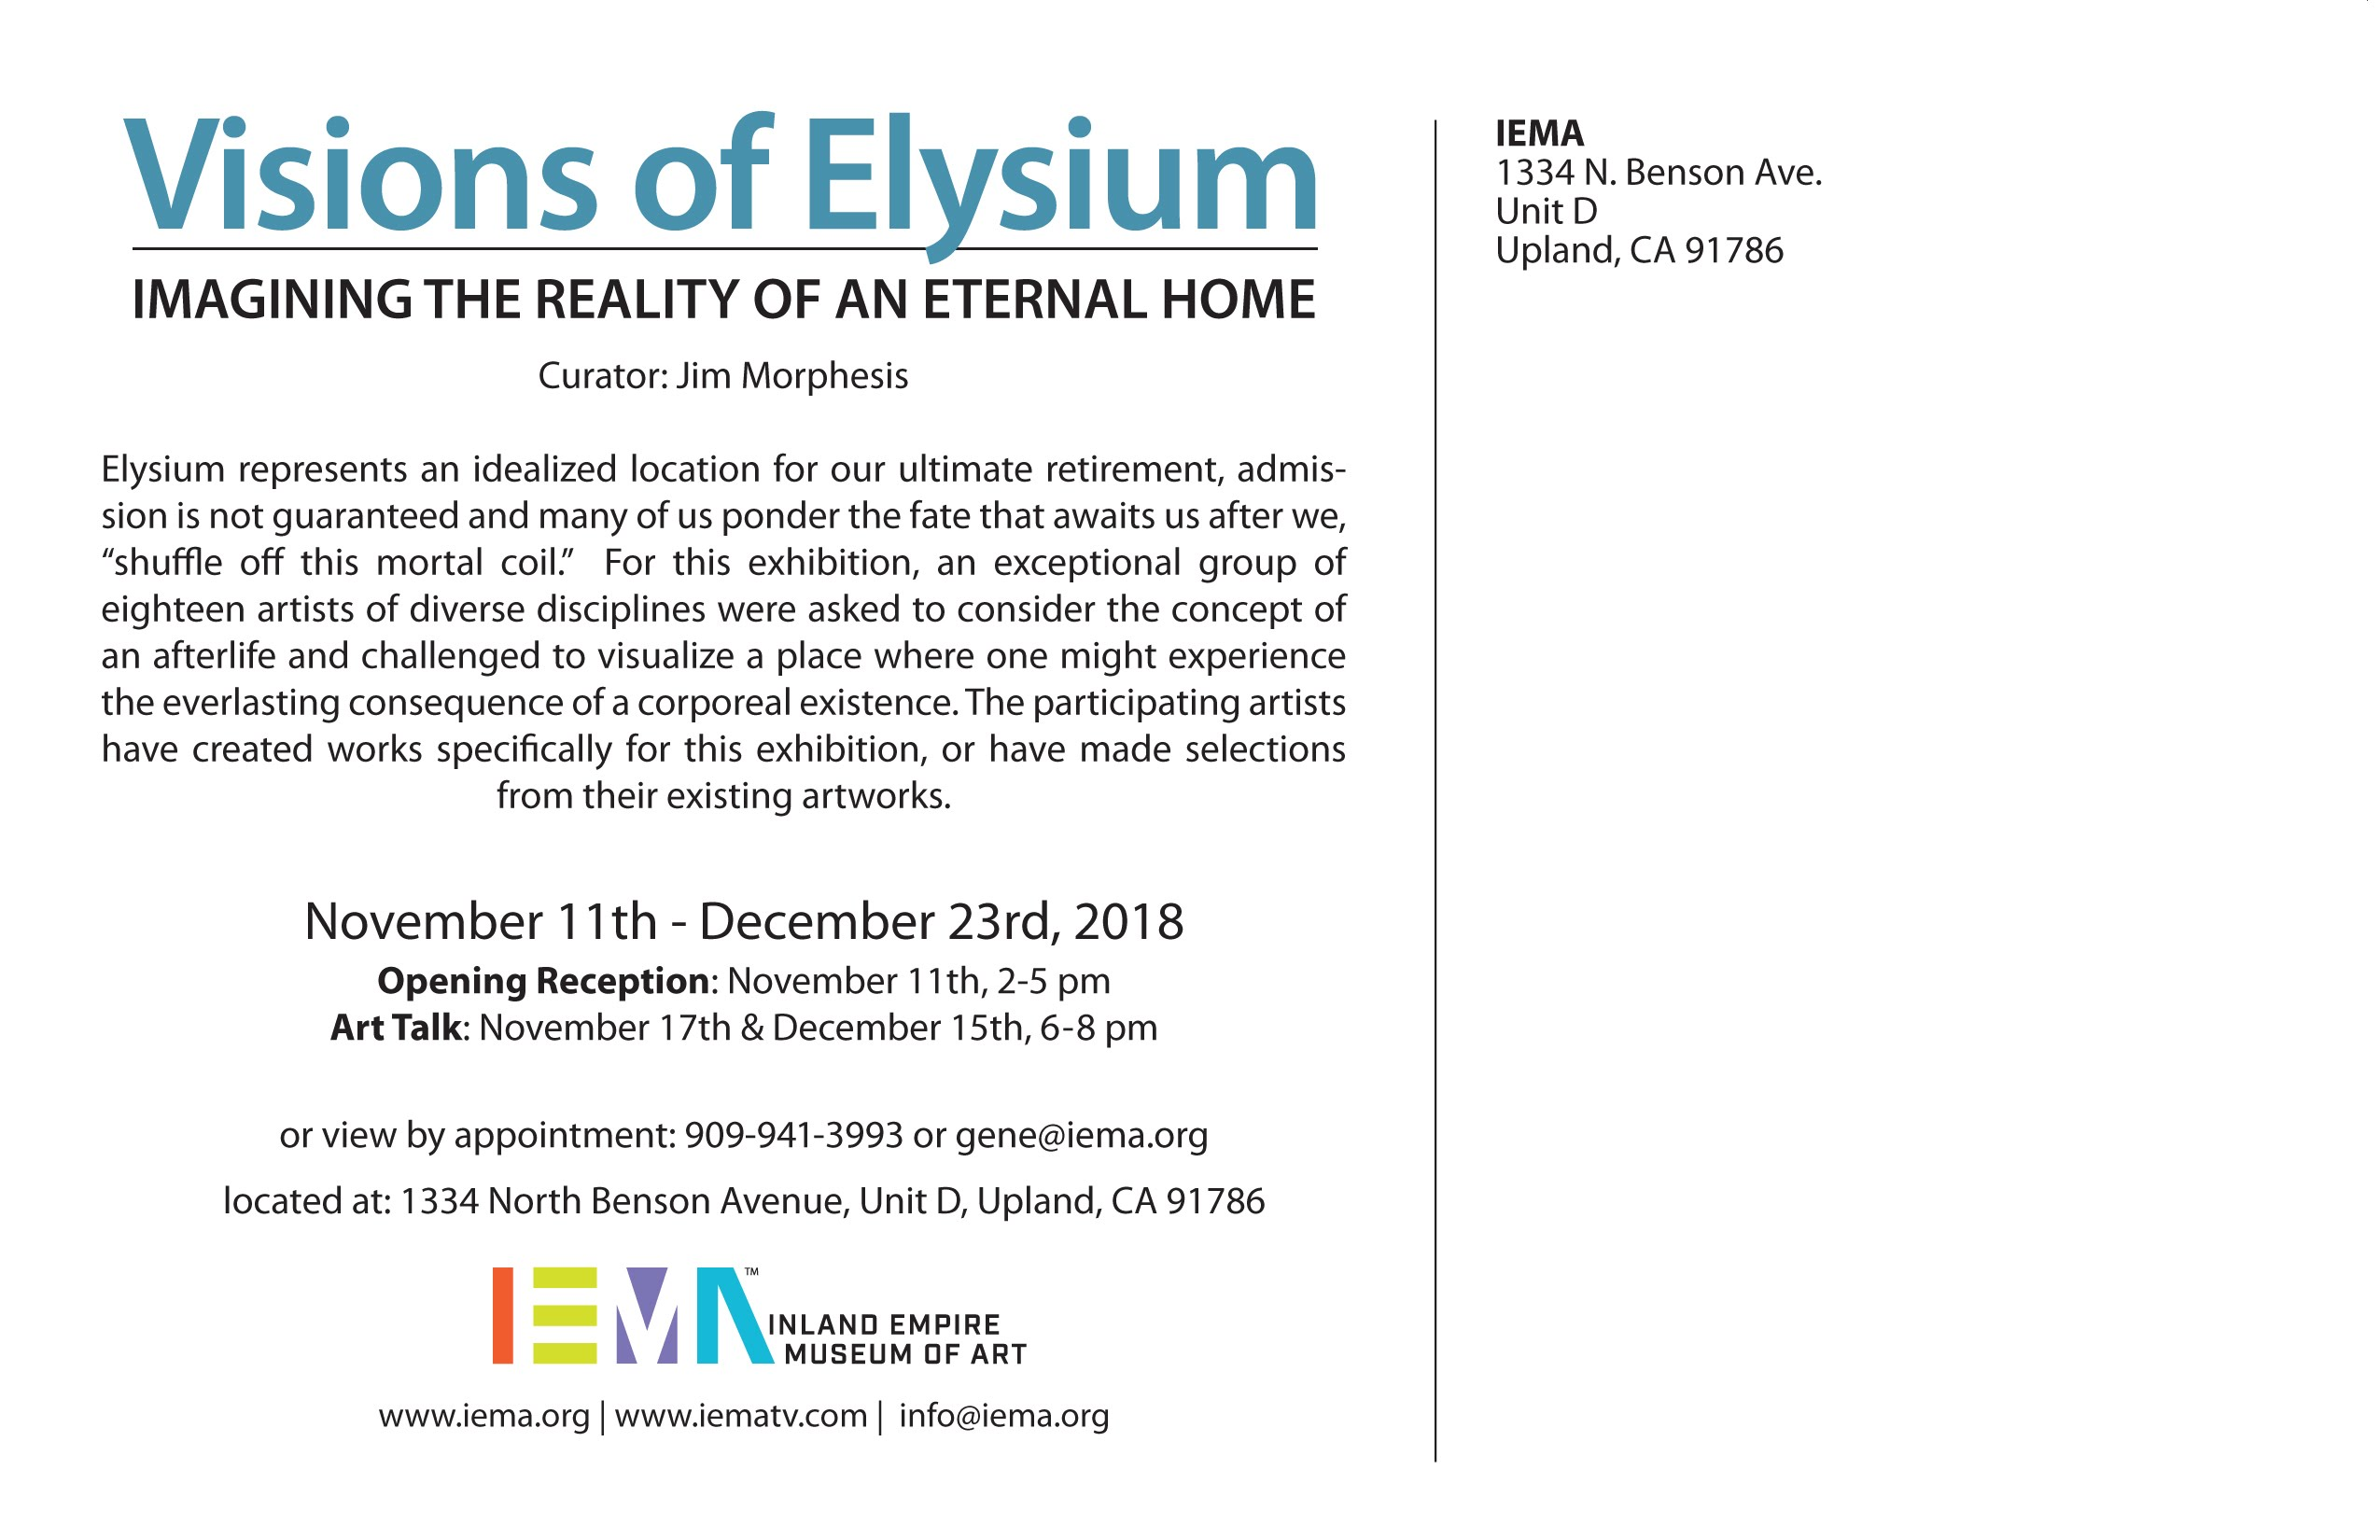 http://www.iearts.org/exhibits_visions_of_elysium.htm